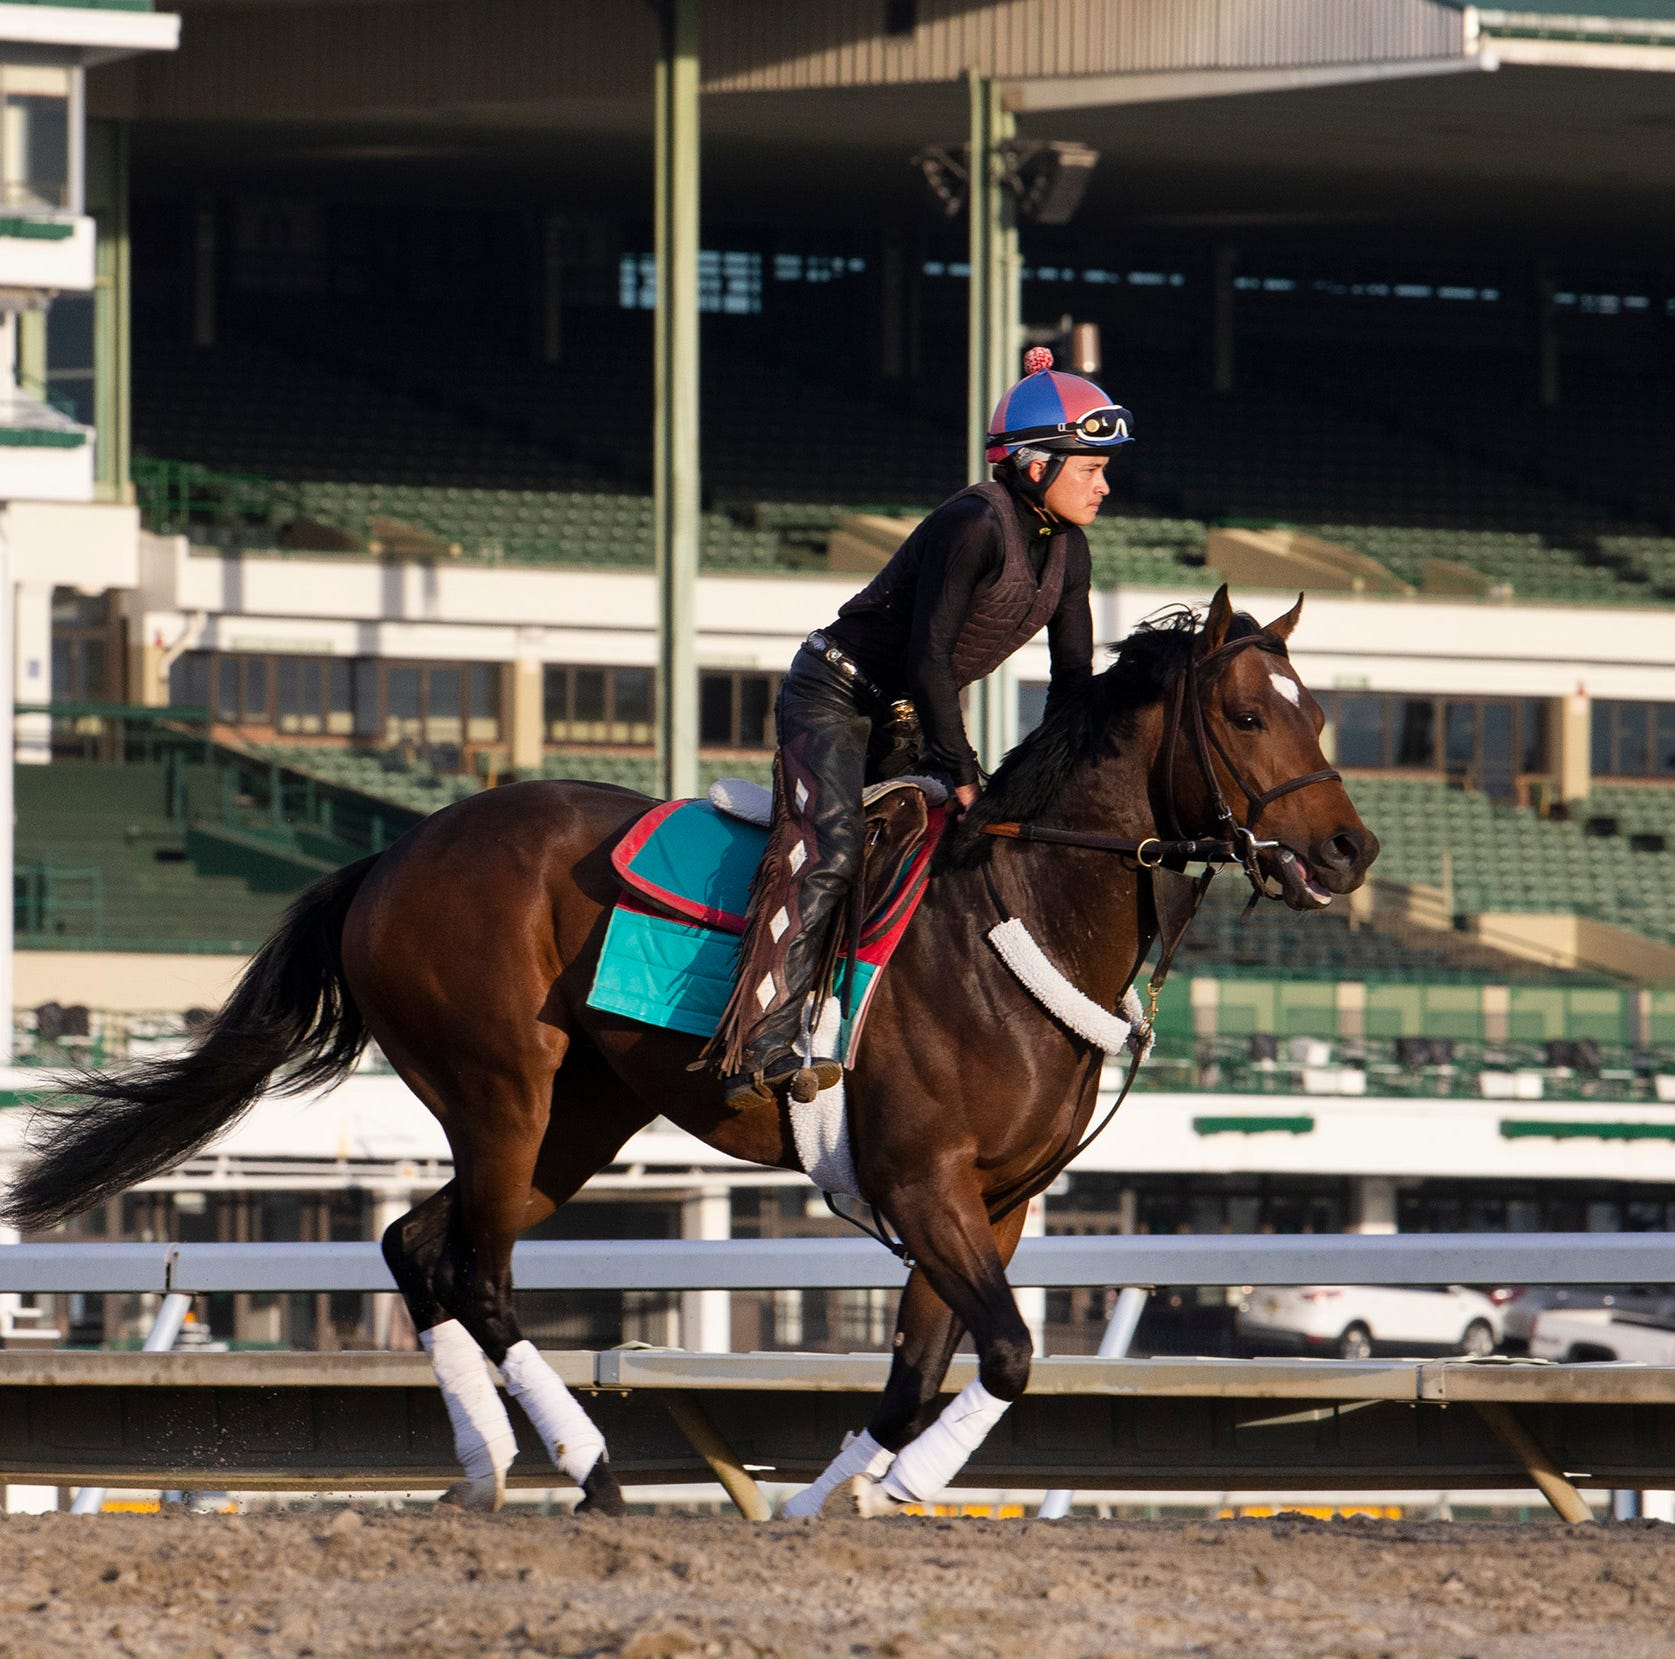 Monmouth Park: Five burning questions as opening day approaches